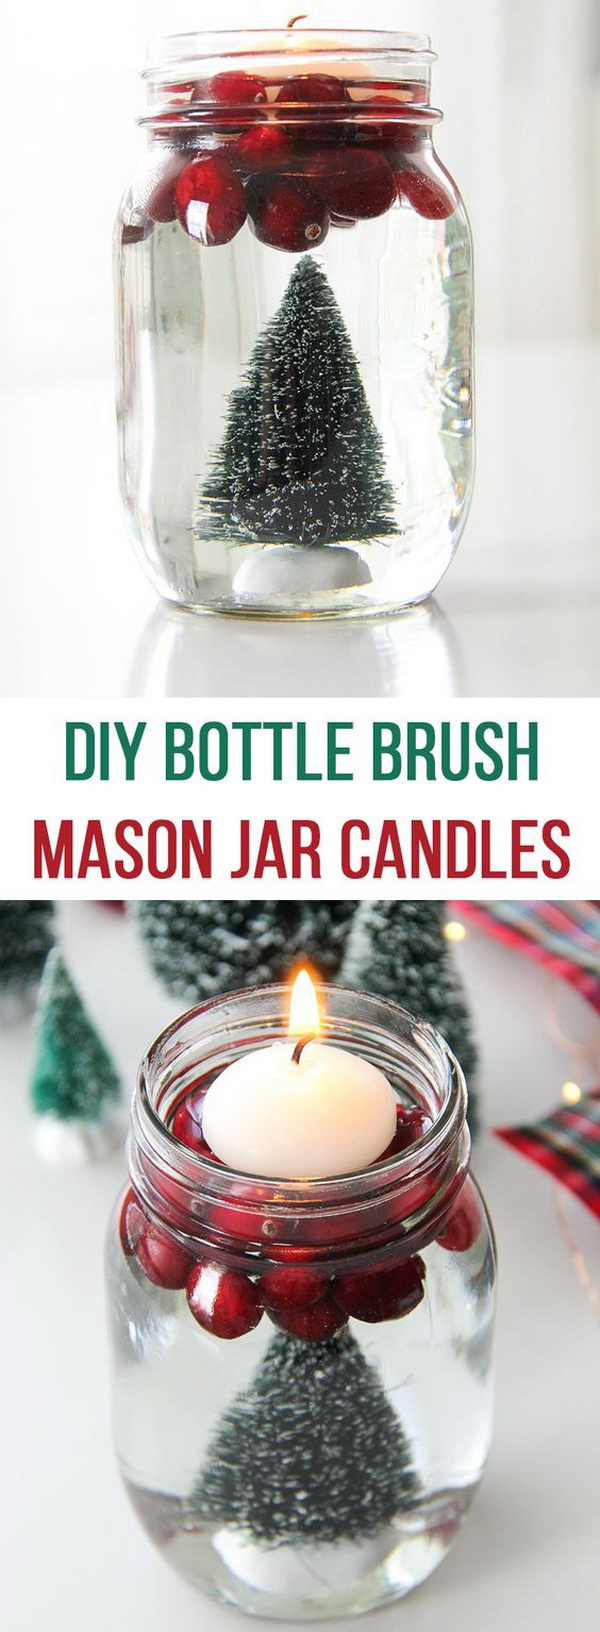 DIY Bottle Brush Mason Jar Candles. Make these adorable Bottle Brush Mason Jar Candles for your holiday table in just a few minutes and with a few simple supplies that you can find from the dollar store or arround your home.